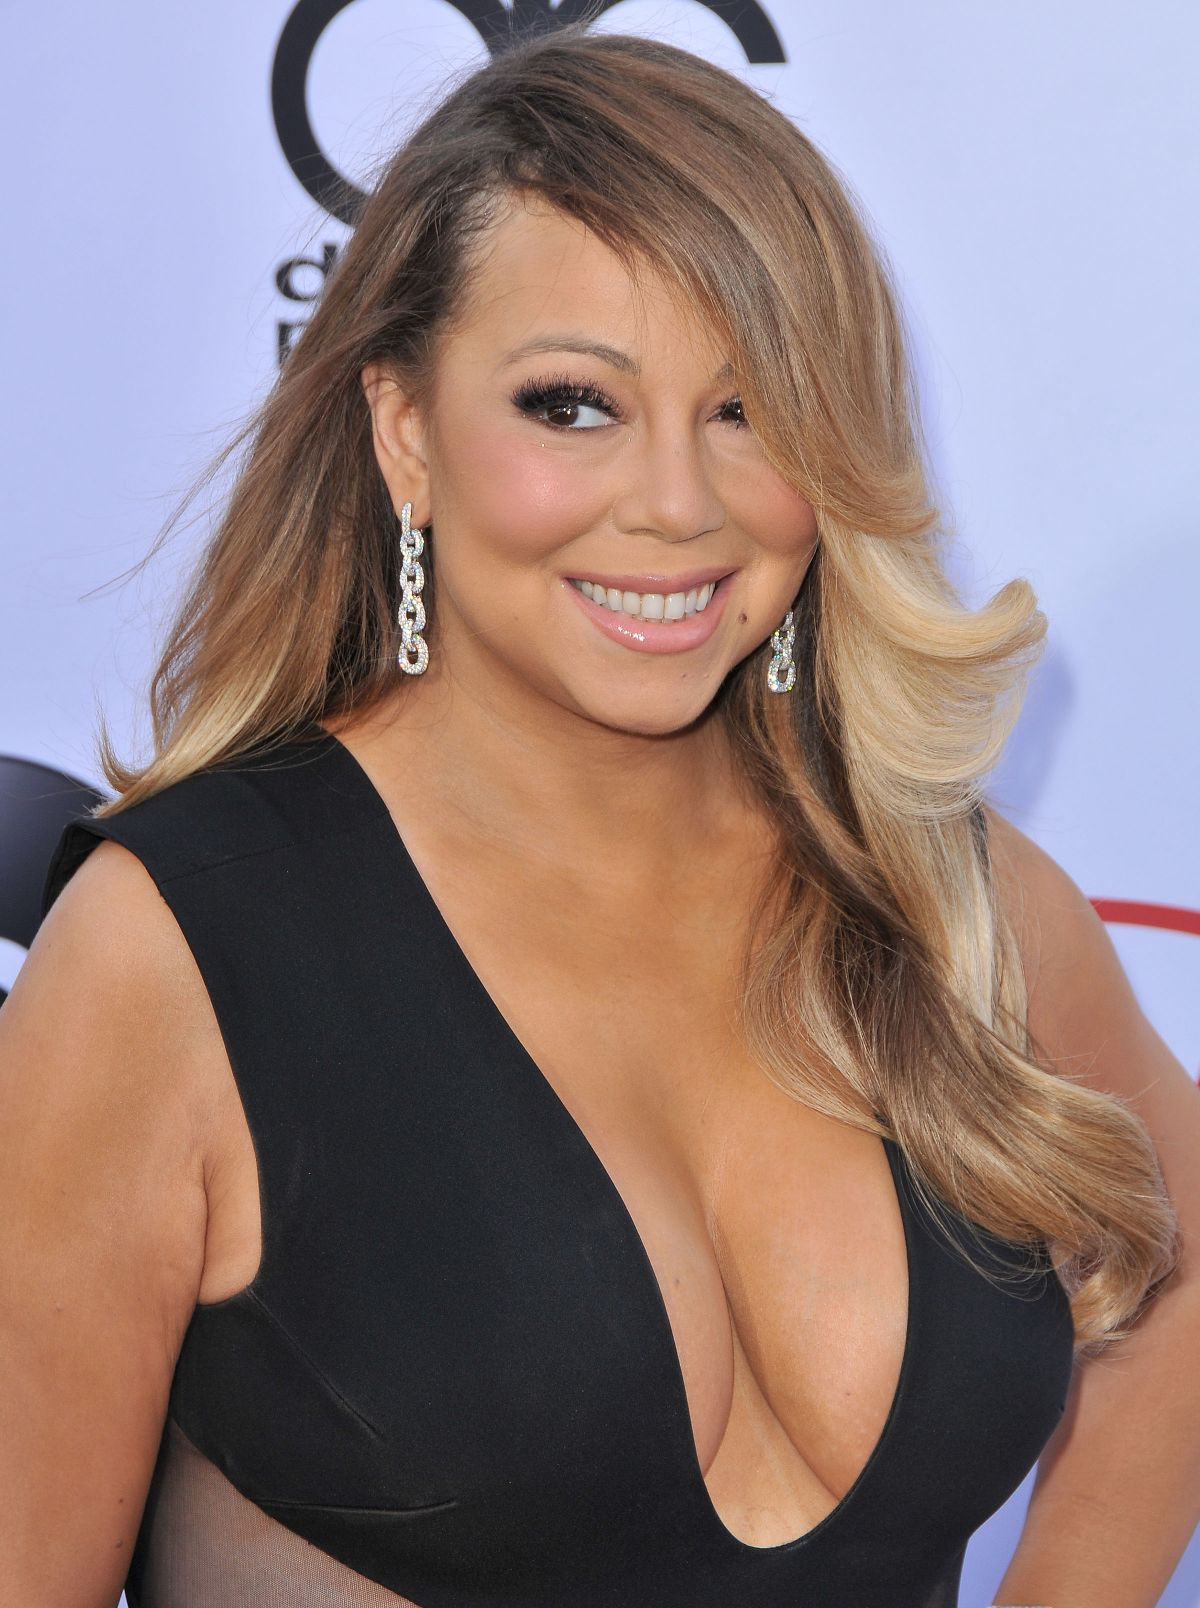 Mariah Carey At 2015 Billboard Music Awards - Celebzz - Celebzz